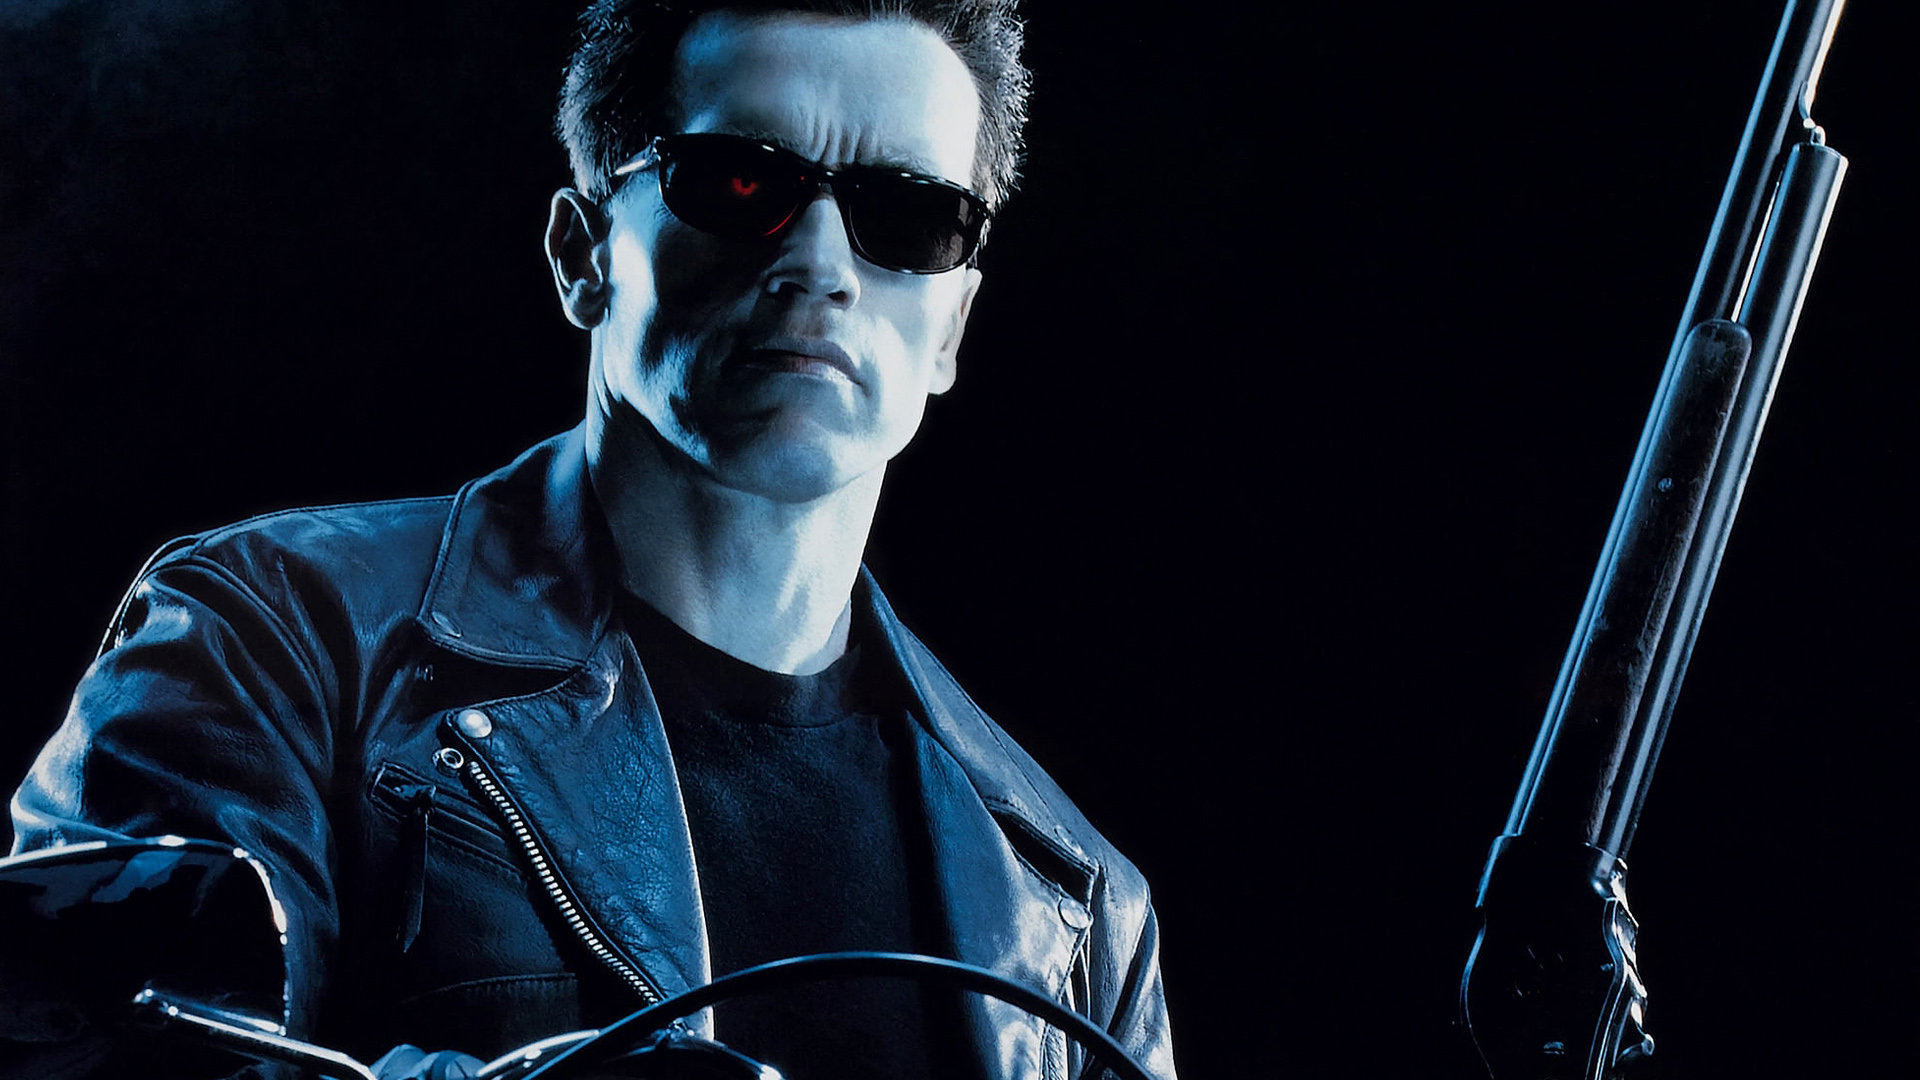 Terminator 2 Judgment Day 25th anniversary: 15 things you may not know about the film